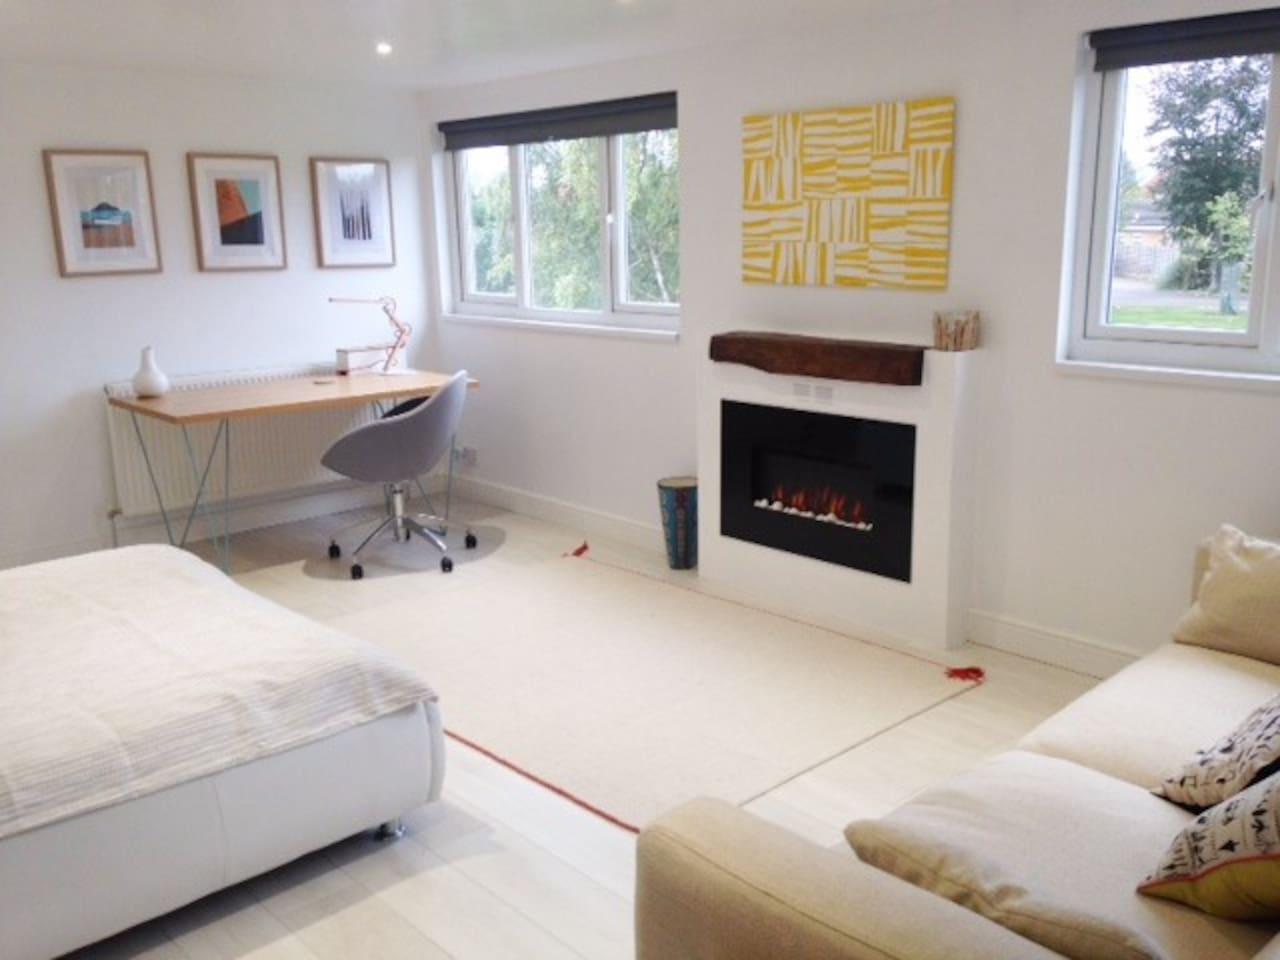 stylish loft 5 minutes walk to bicester village houses for rent